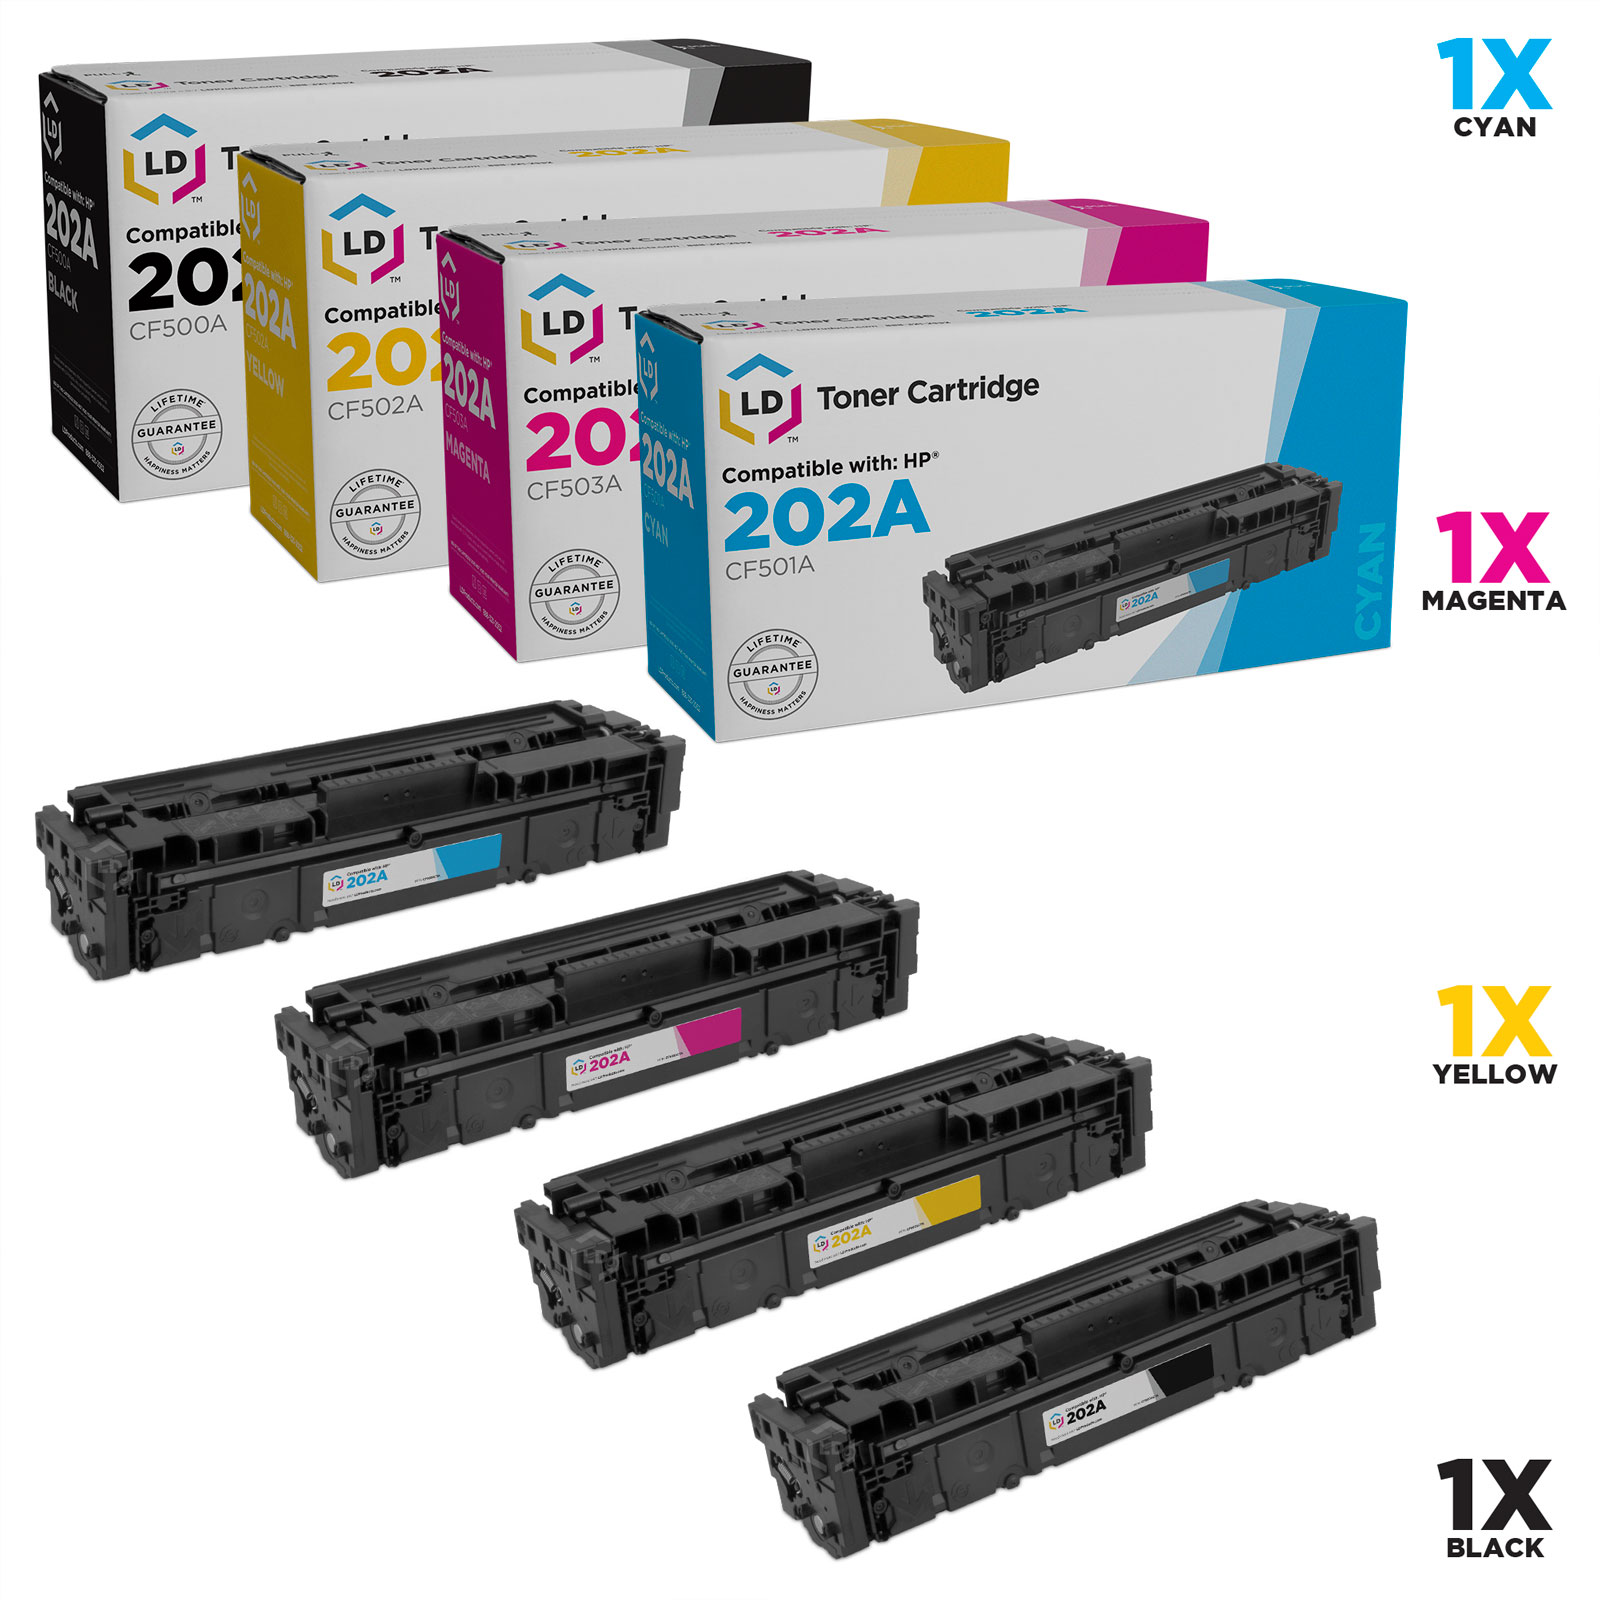 LD Compatible Replacements for HP 202A Set of 4 Toner Cartridges: CF500A Black, CF501A Cyan, CF503A Magenta & CF502A Yellow for use in Color LaserJet M254dw & M281dw